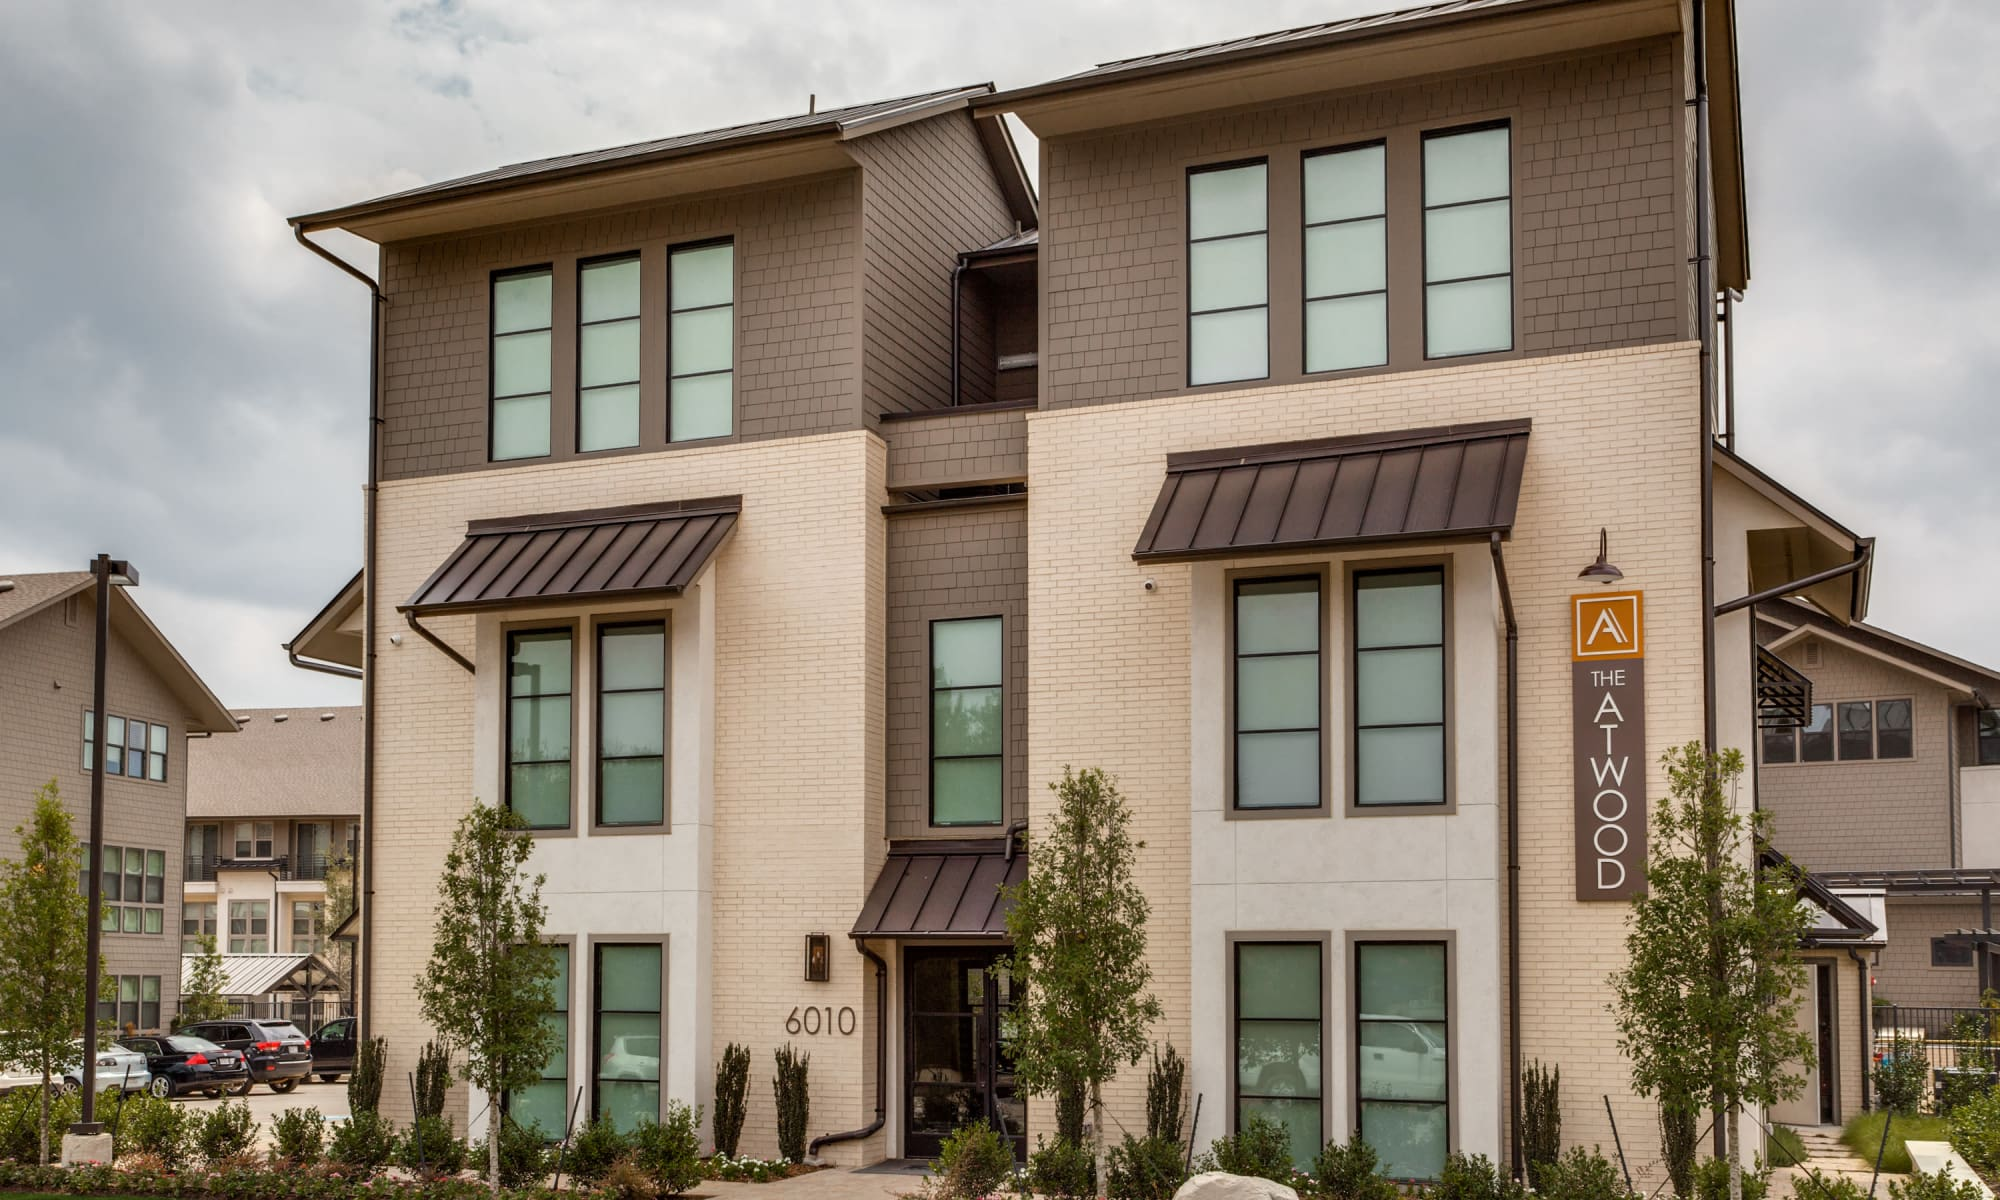 Atwood at Ellison offers apartments in Dallas, Texas